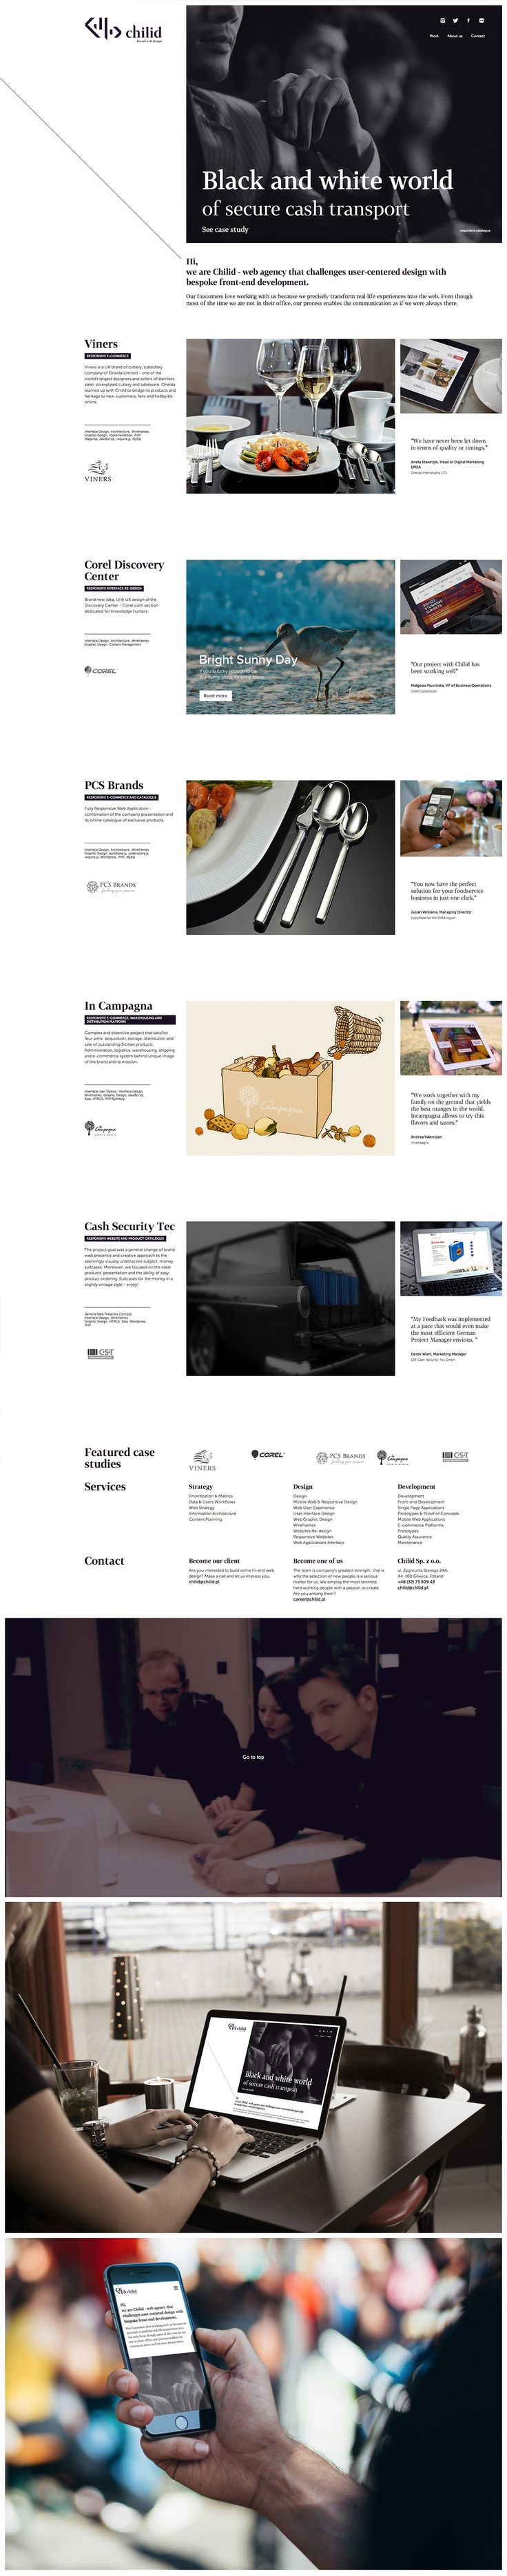 Chilid Agency- RESPONSIVE WEBSITE by chilidagency.com. Next iteration of www.chilidagency.com! Read about our projects, team and process. Check out our Clients and their recommendations. Scope of work: #graphicdesign, #Interface, #Wireframes, #HTML5, #CSS3, #jQuery,  #grunt, #bower, #requirejs, #Wordpress, #Video.